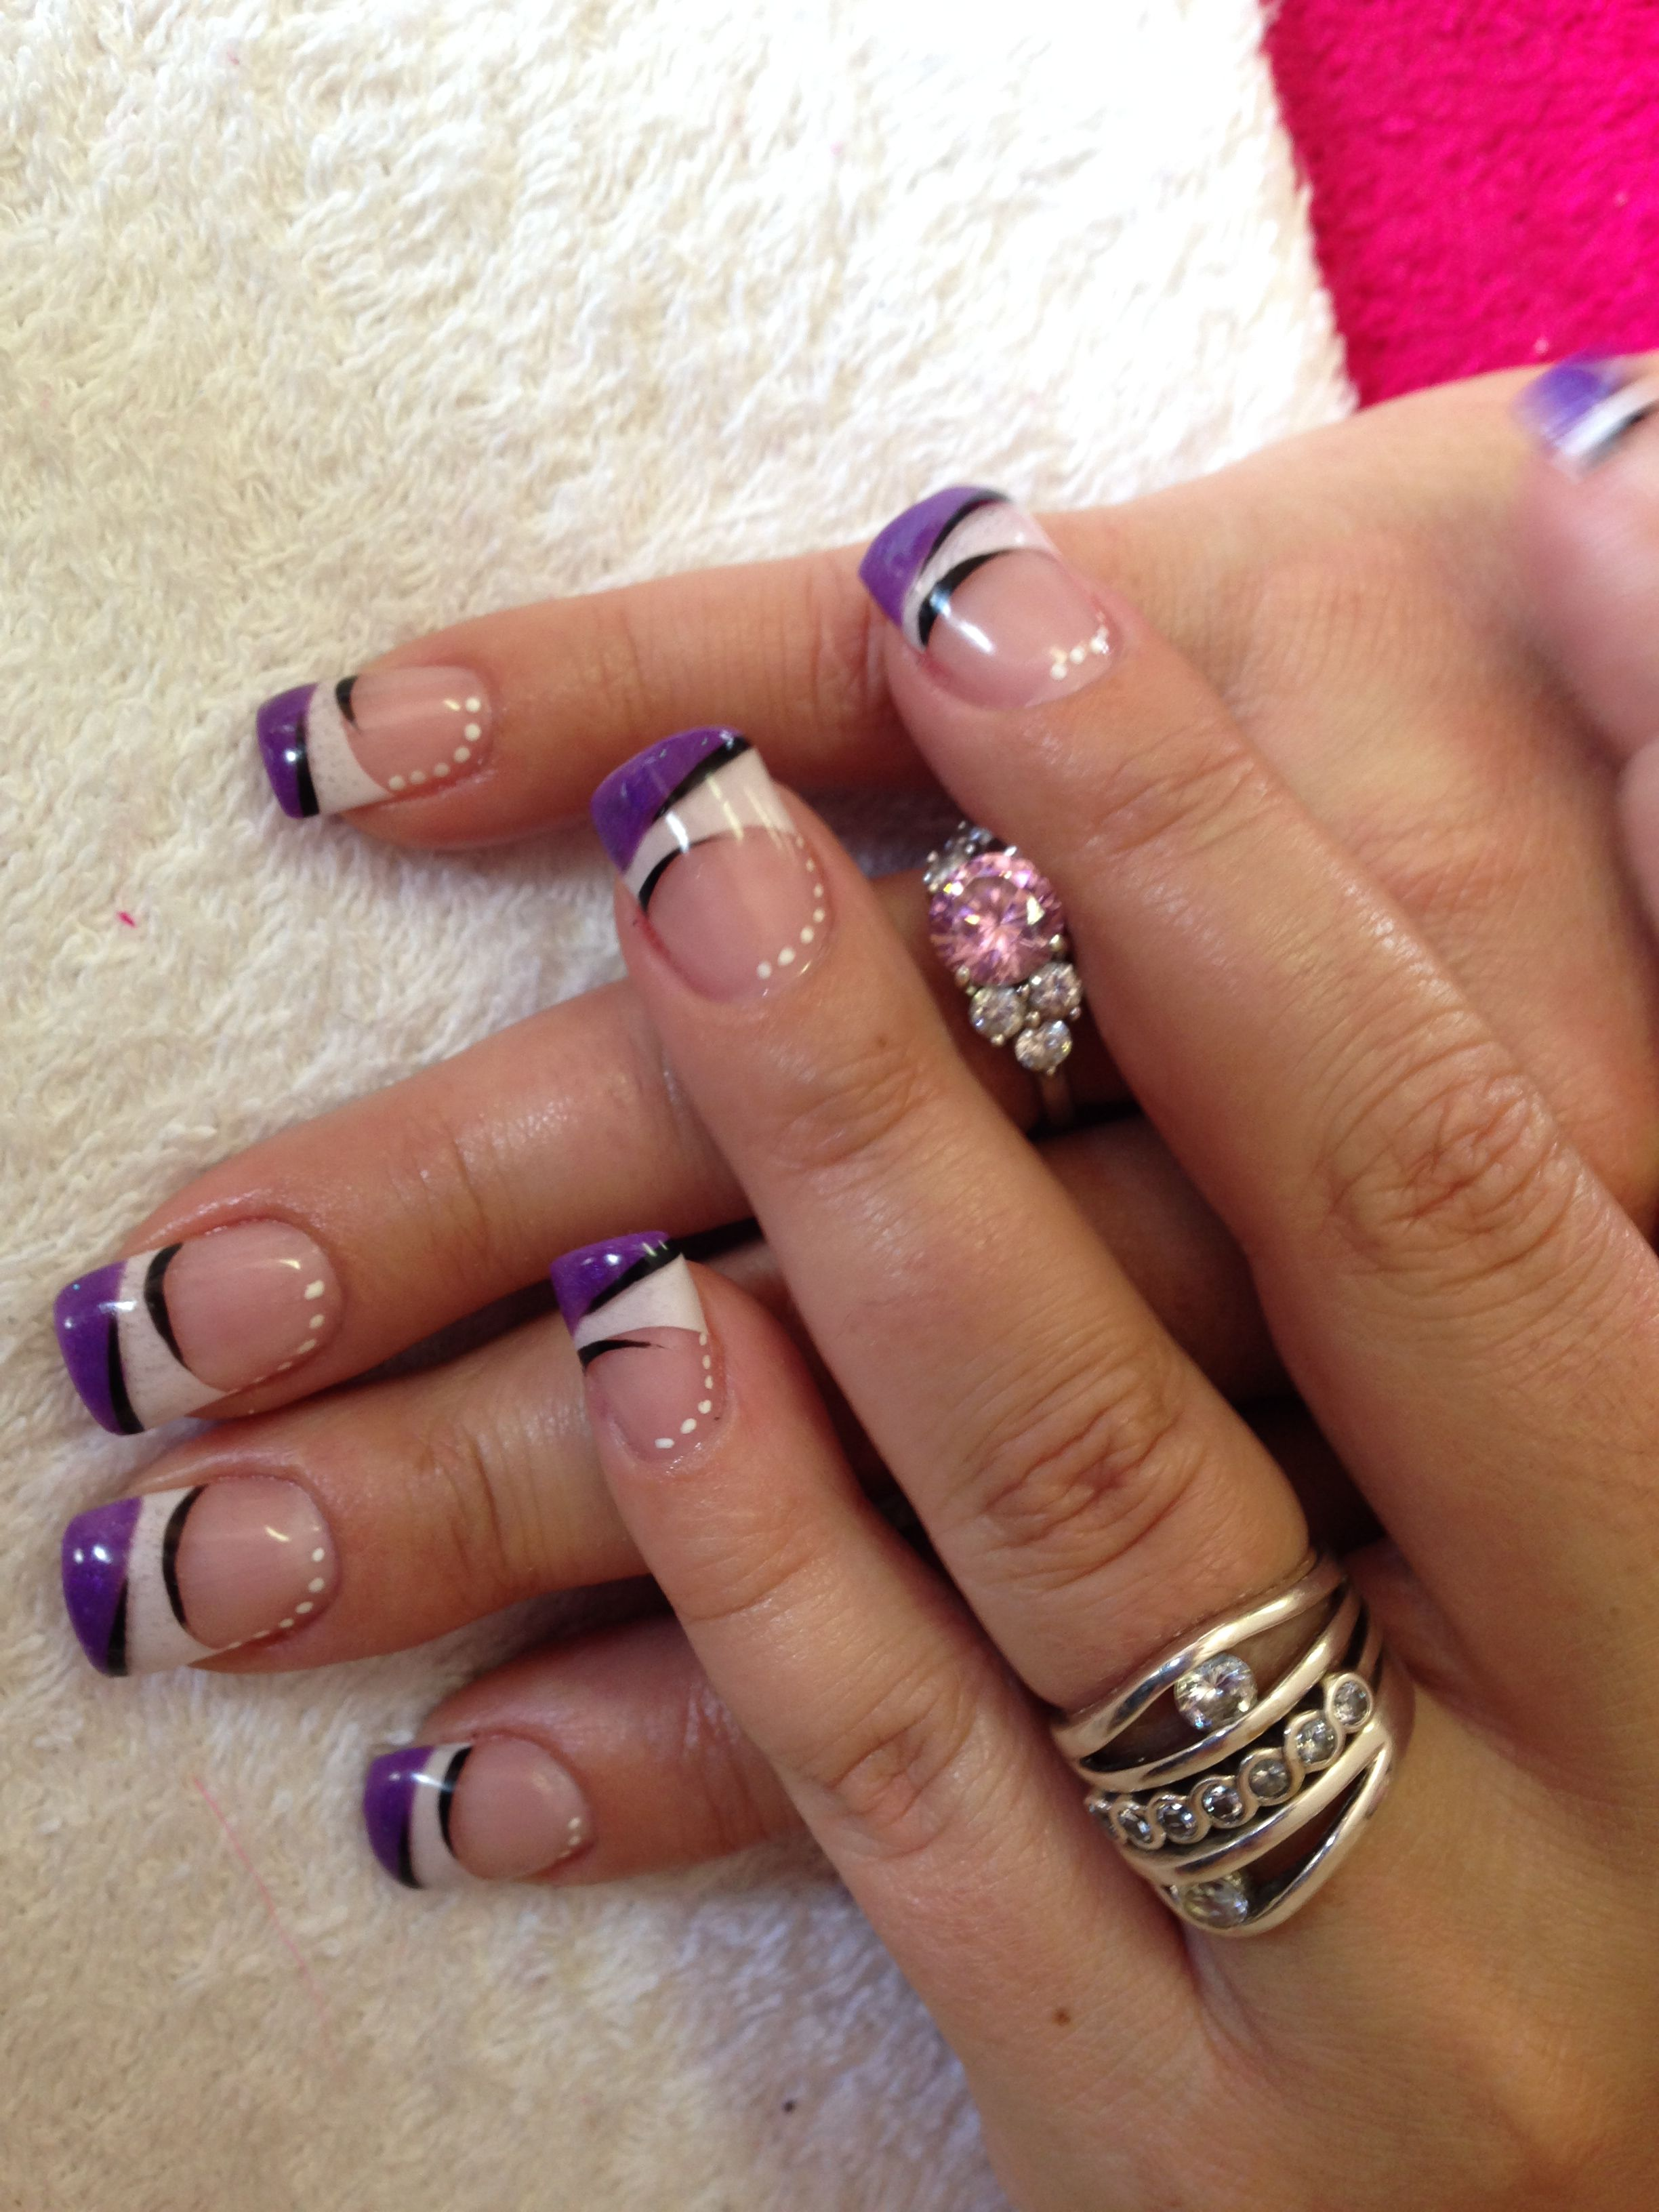 Purple And White French French Nail Designs Nail Tip Designs Nail Designs